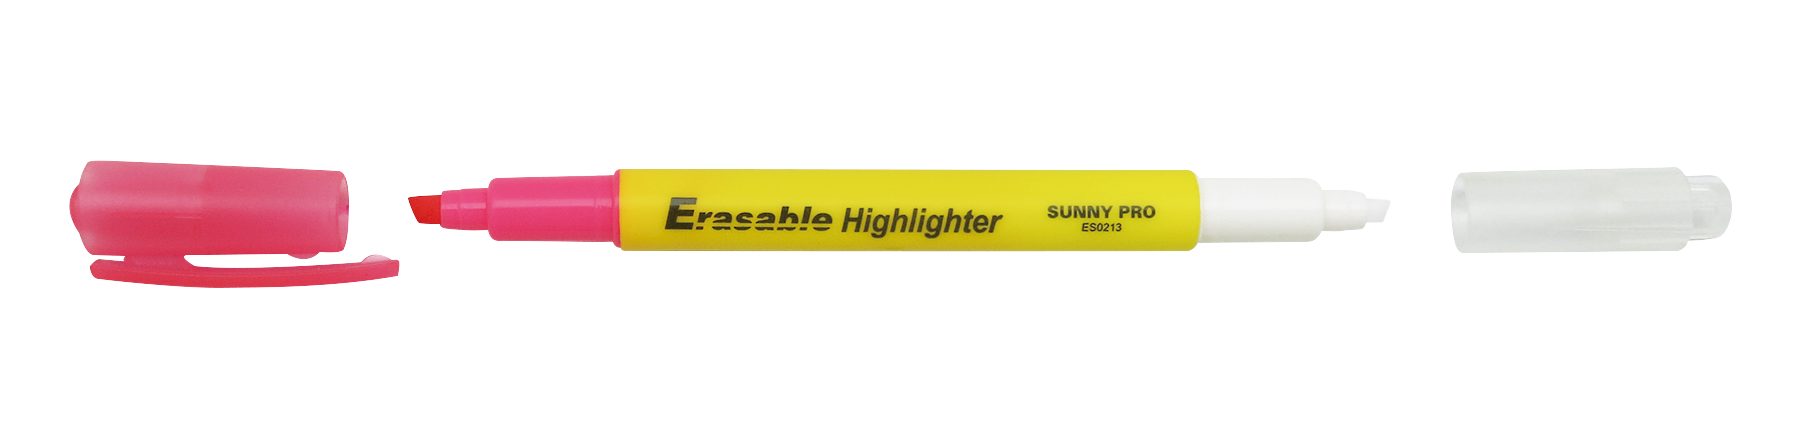 ES0213 Erasable Highlighter